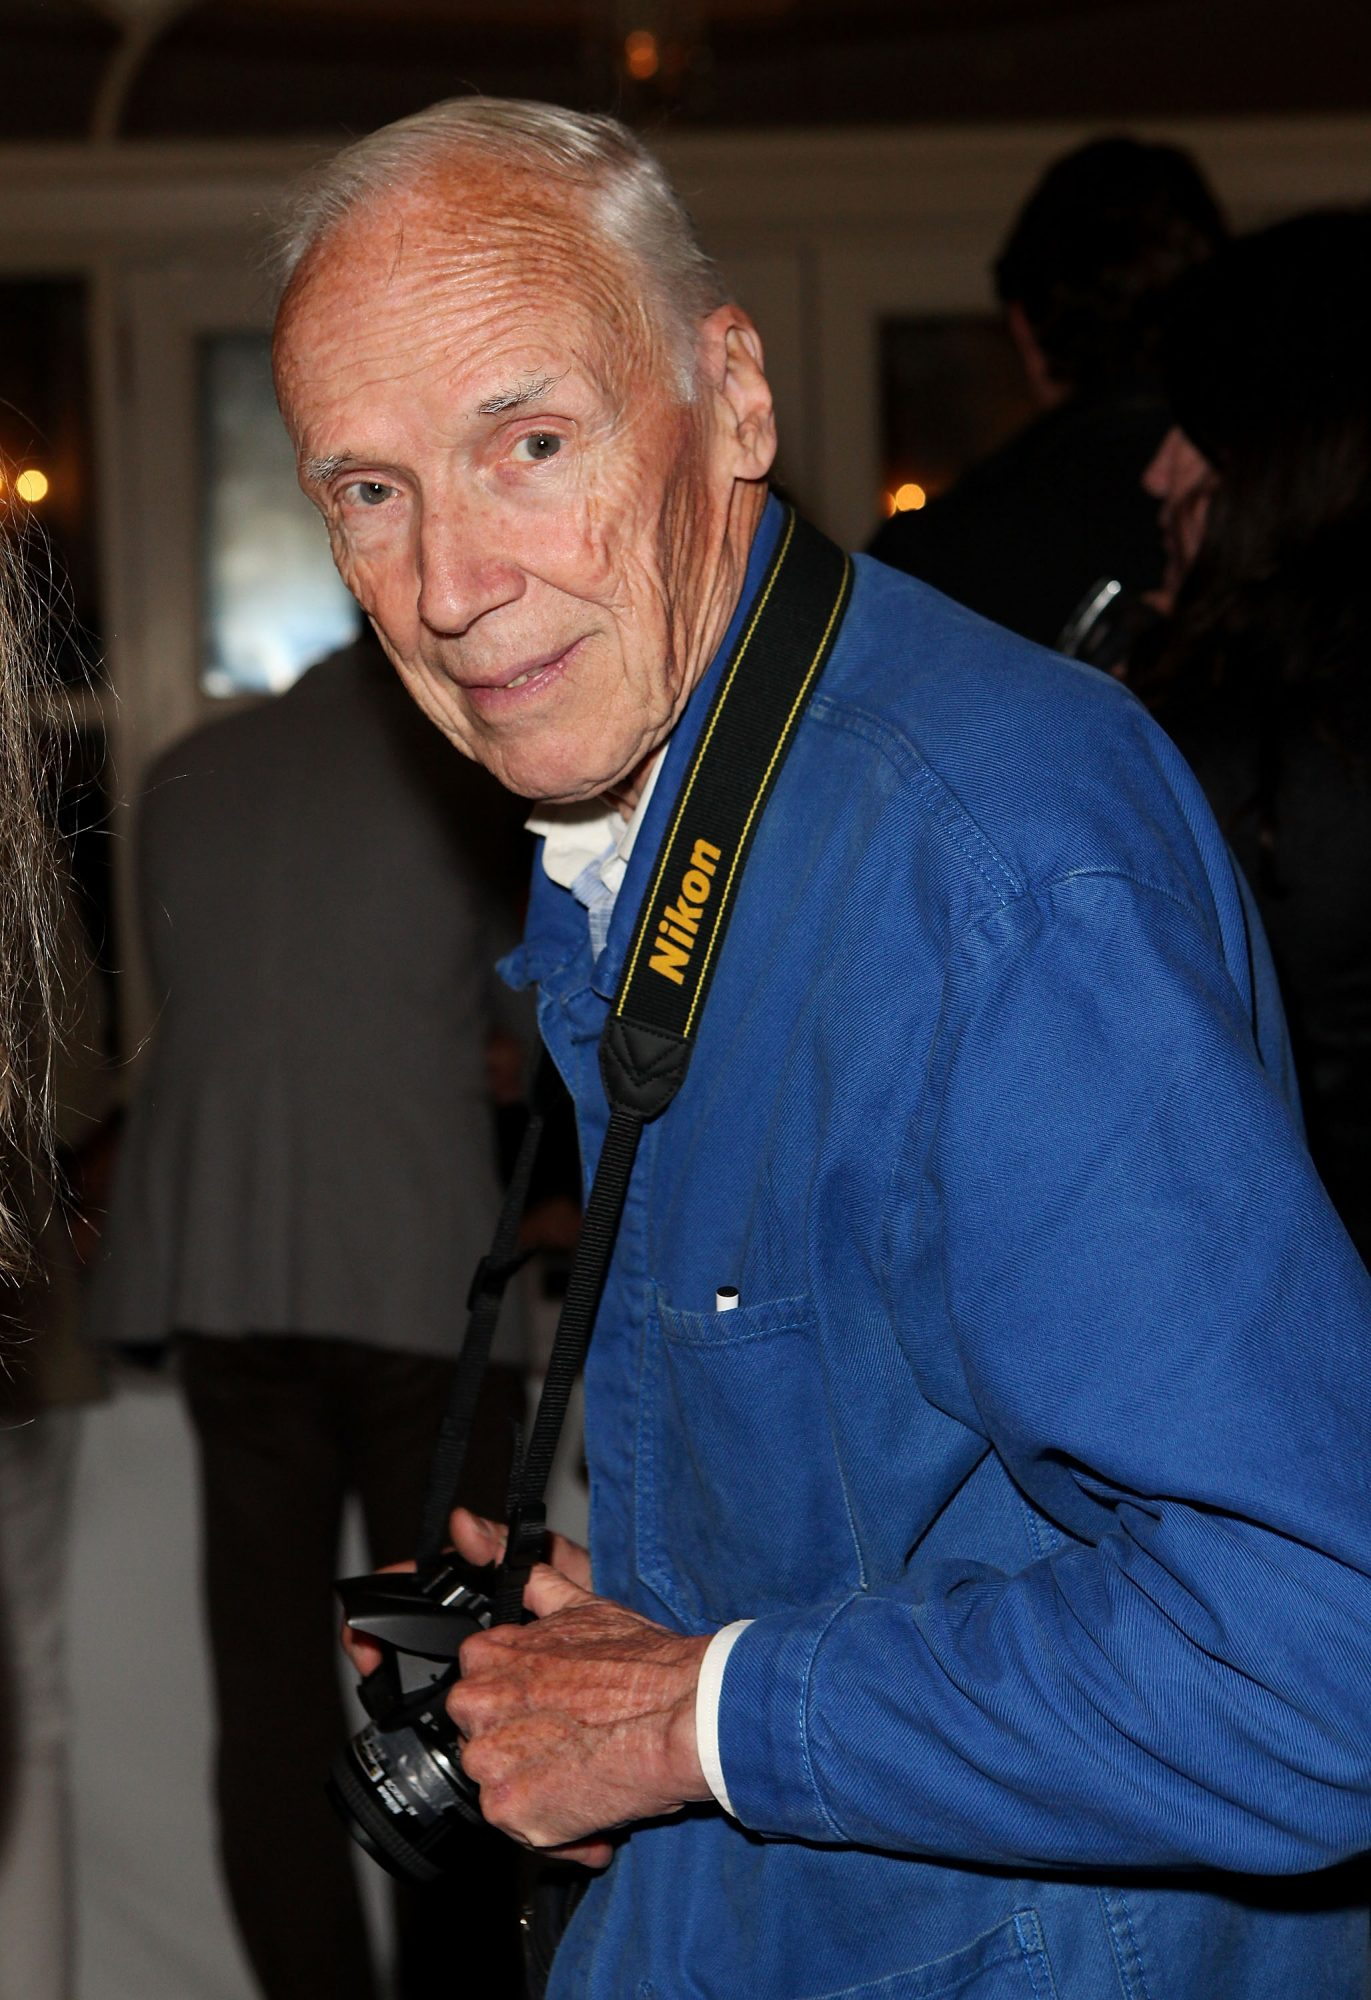 picture-of-bill-cunningham-photo.jpg